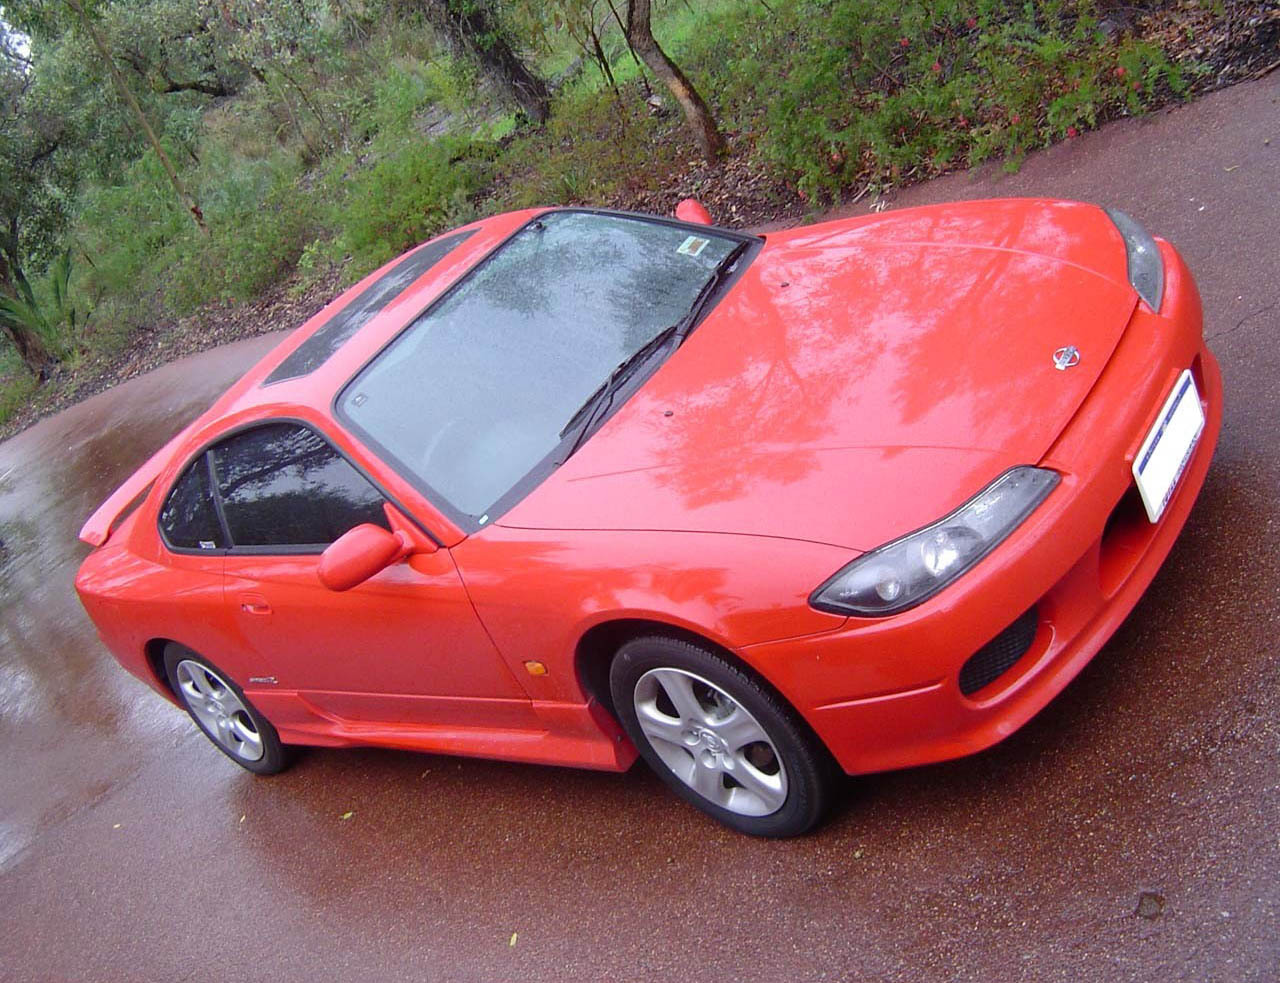 The S15 Is A Rear Wheel Drive Sports Coupe, Powered By Nissanu0027s SR20DET; A  2.0 Litre In Line 4 Cylinder Turbocharged Engine With Air To Air  Intercooler That ...